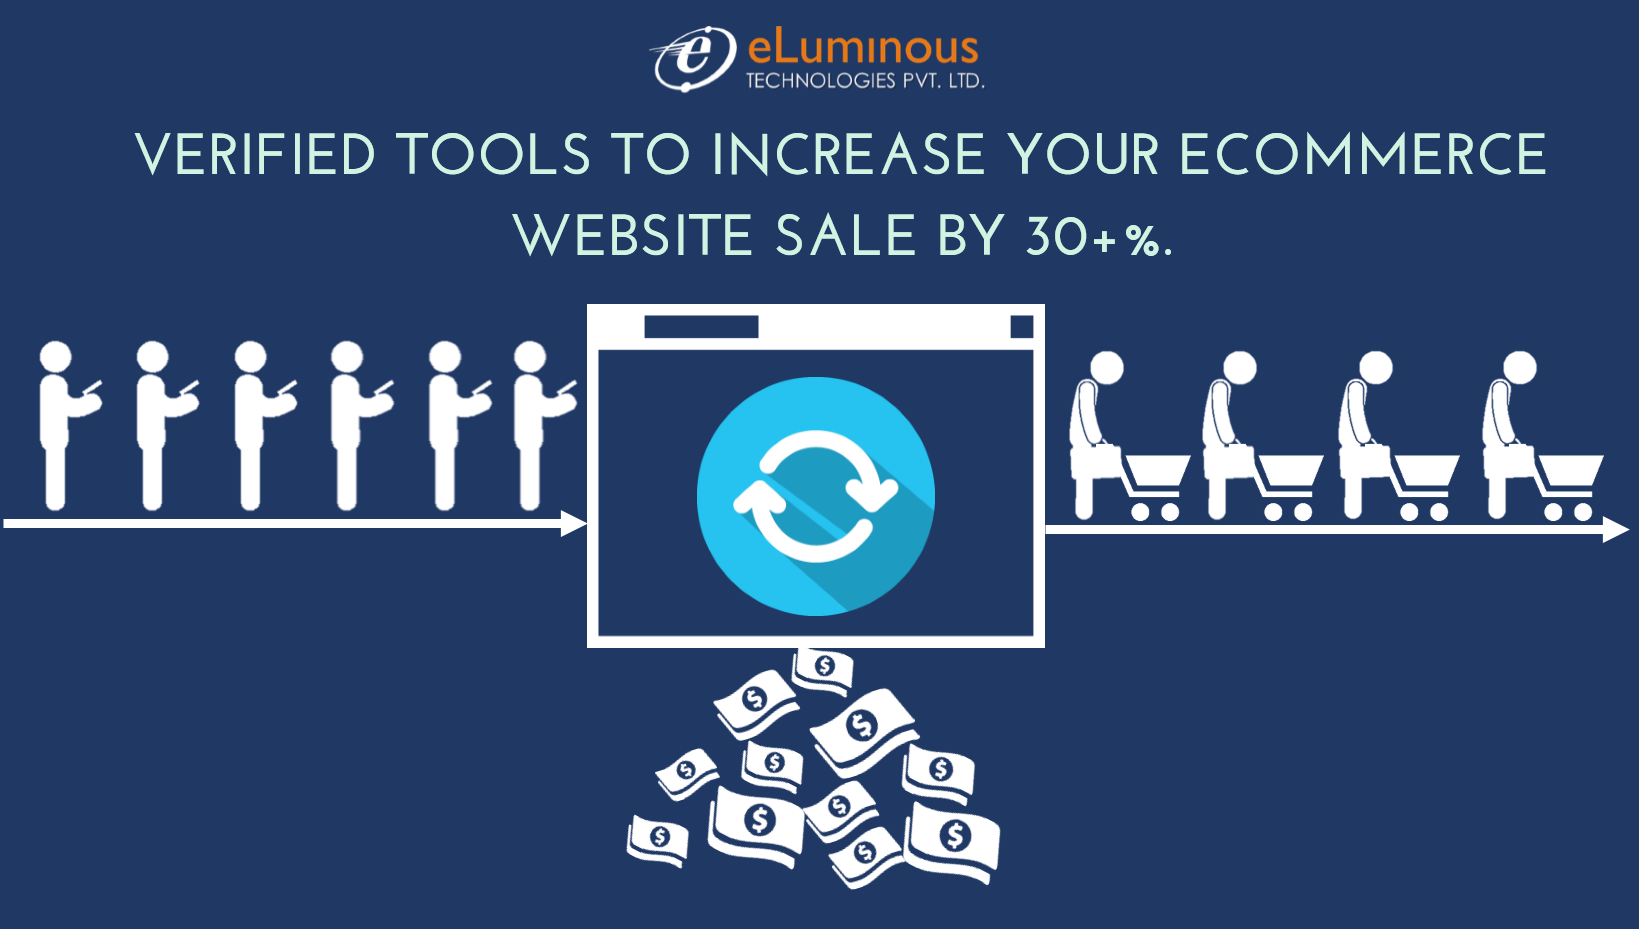 Verified Tools to Increase Your Ecommerce Website Sale By 30+%